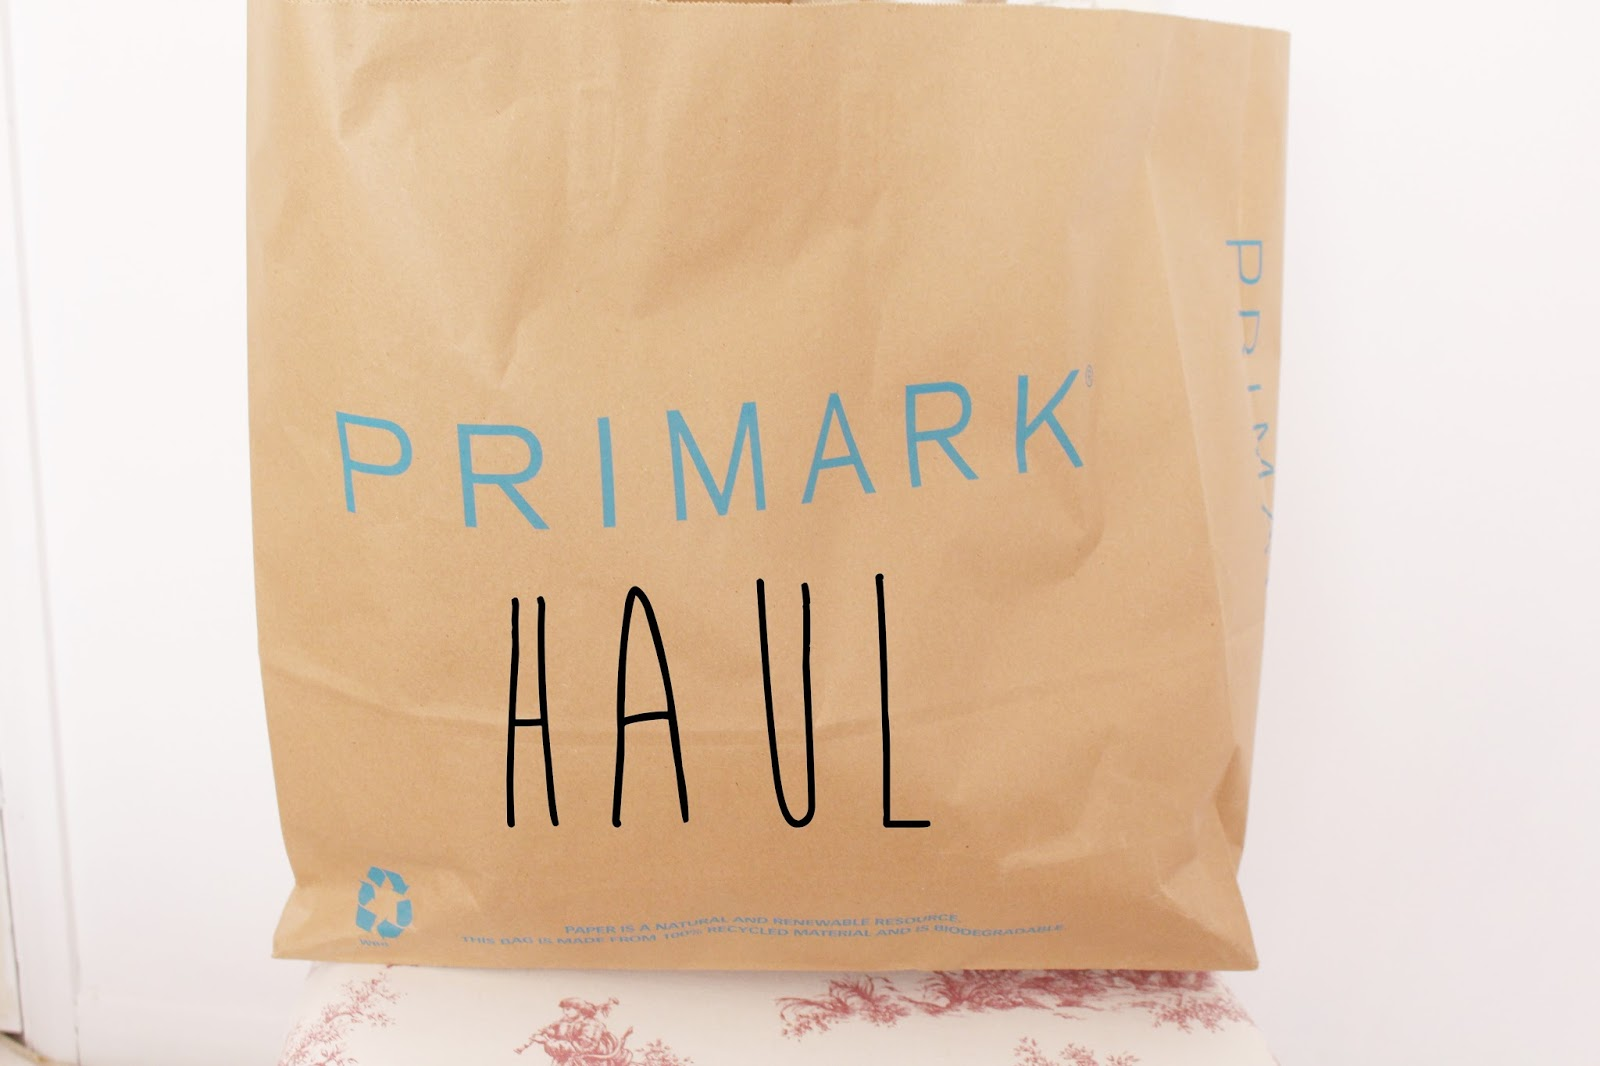 Summer Primark Haul April 2014